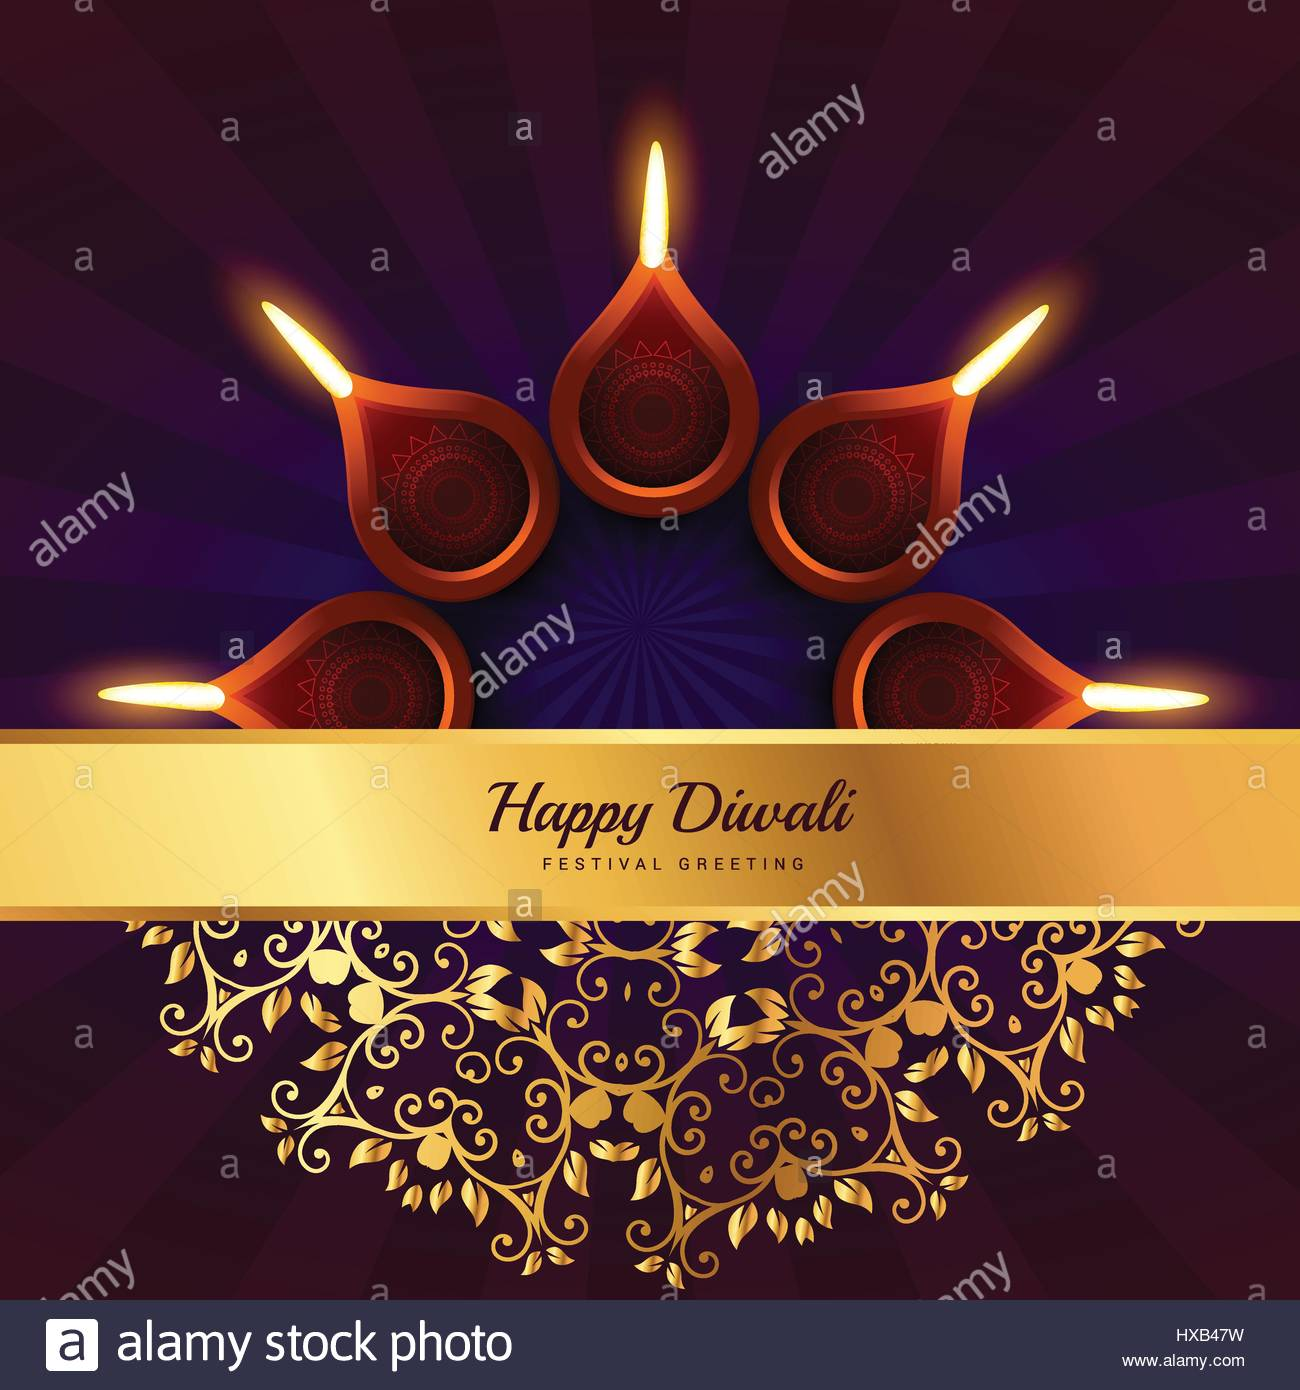 Colorful diwali greeting vector background stock photos colorful happy diwali greeting vector design background stock image kristyandbryce Image collections